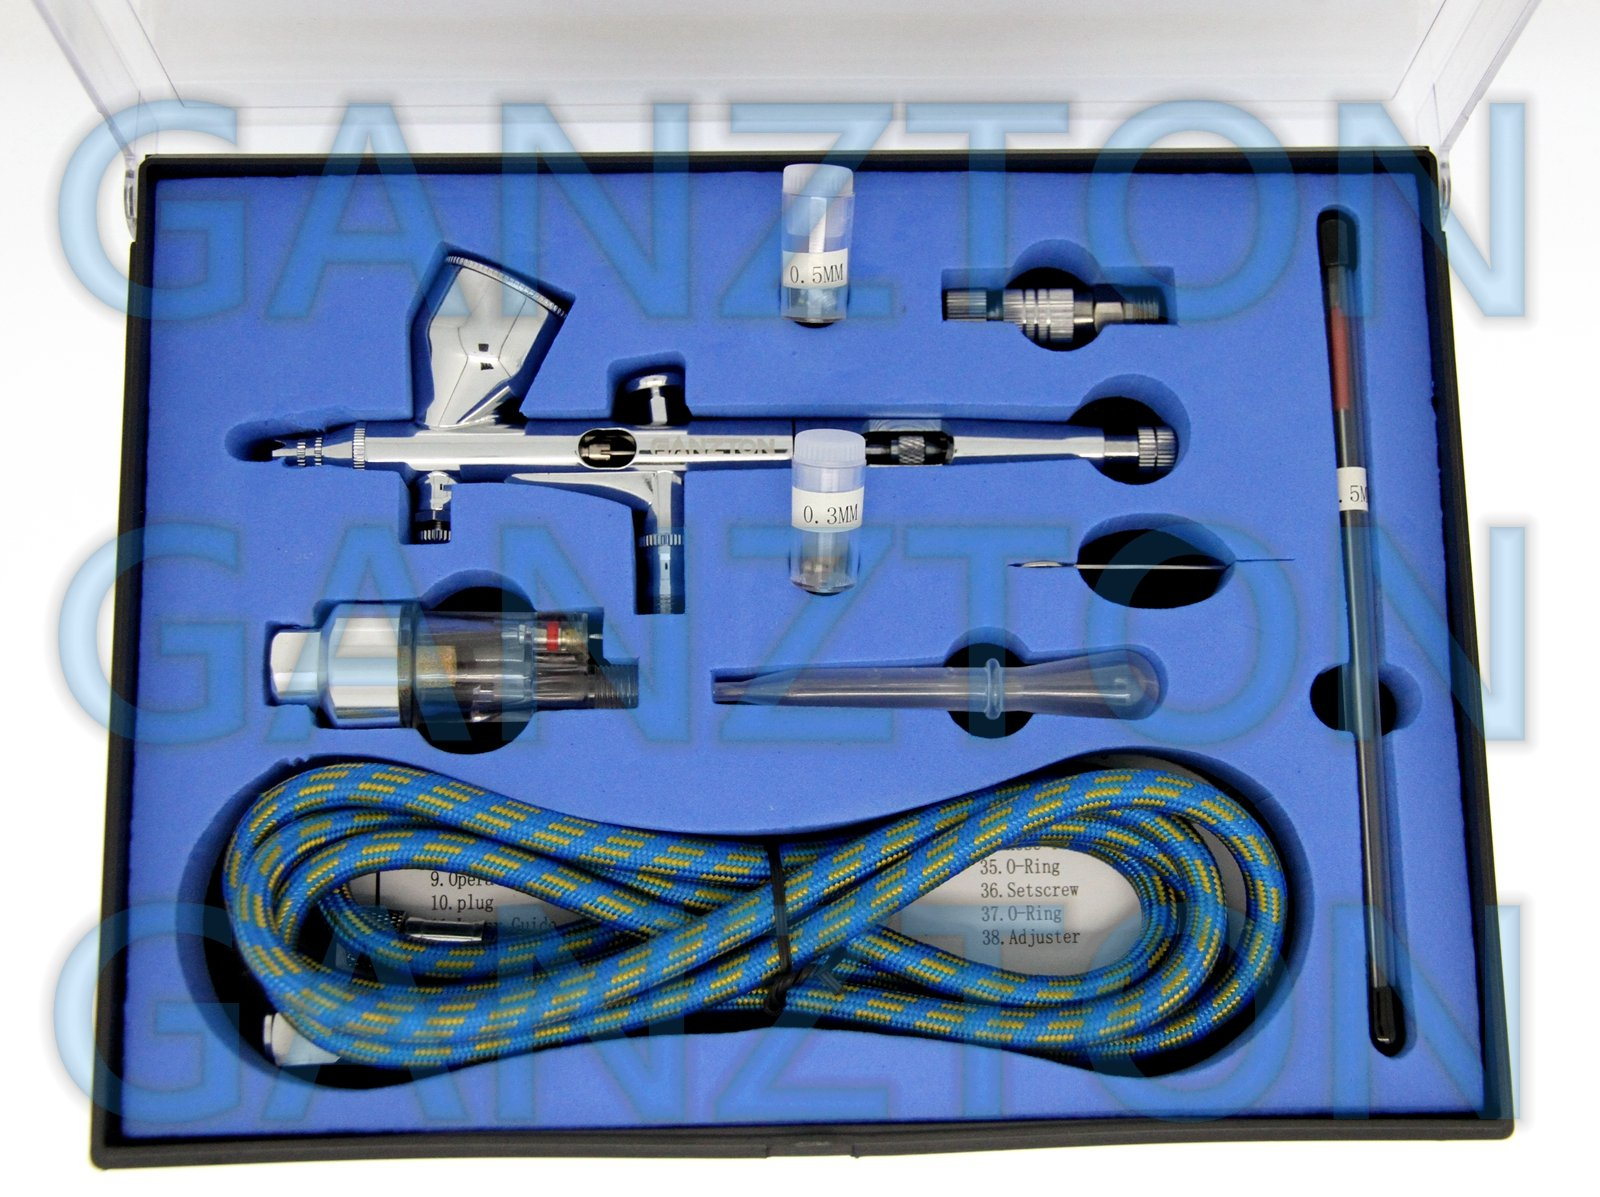 GANZTON 180K Airbrush Kit Dual Action Air Brush Kit Spray Gun Air Hose with 0.2mm/0.3mm/0.5mm Needle for Tattoo Cake Decorating Nail Beauty Painting Starter